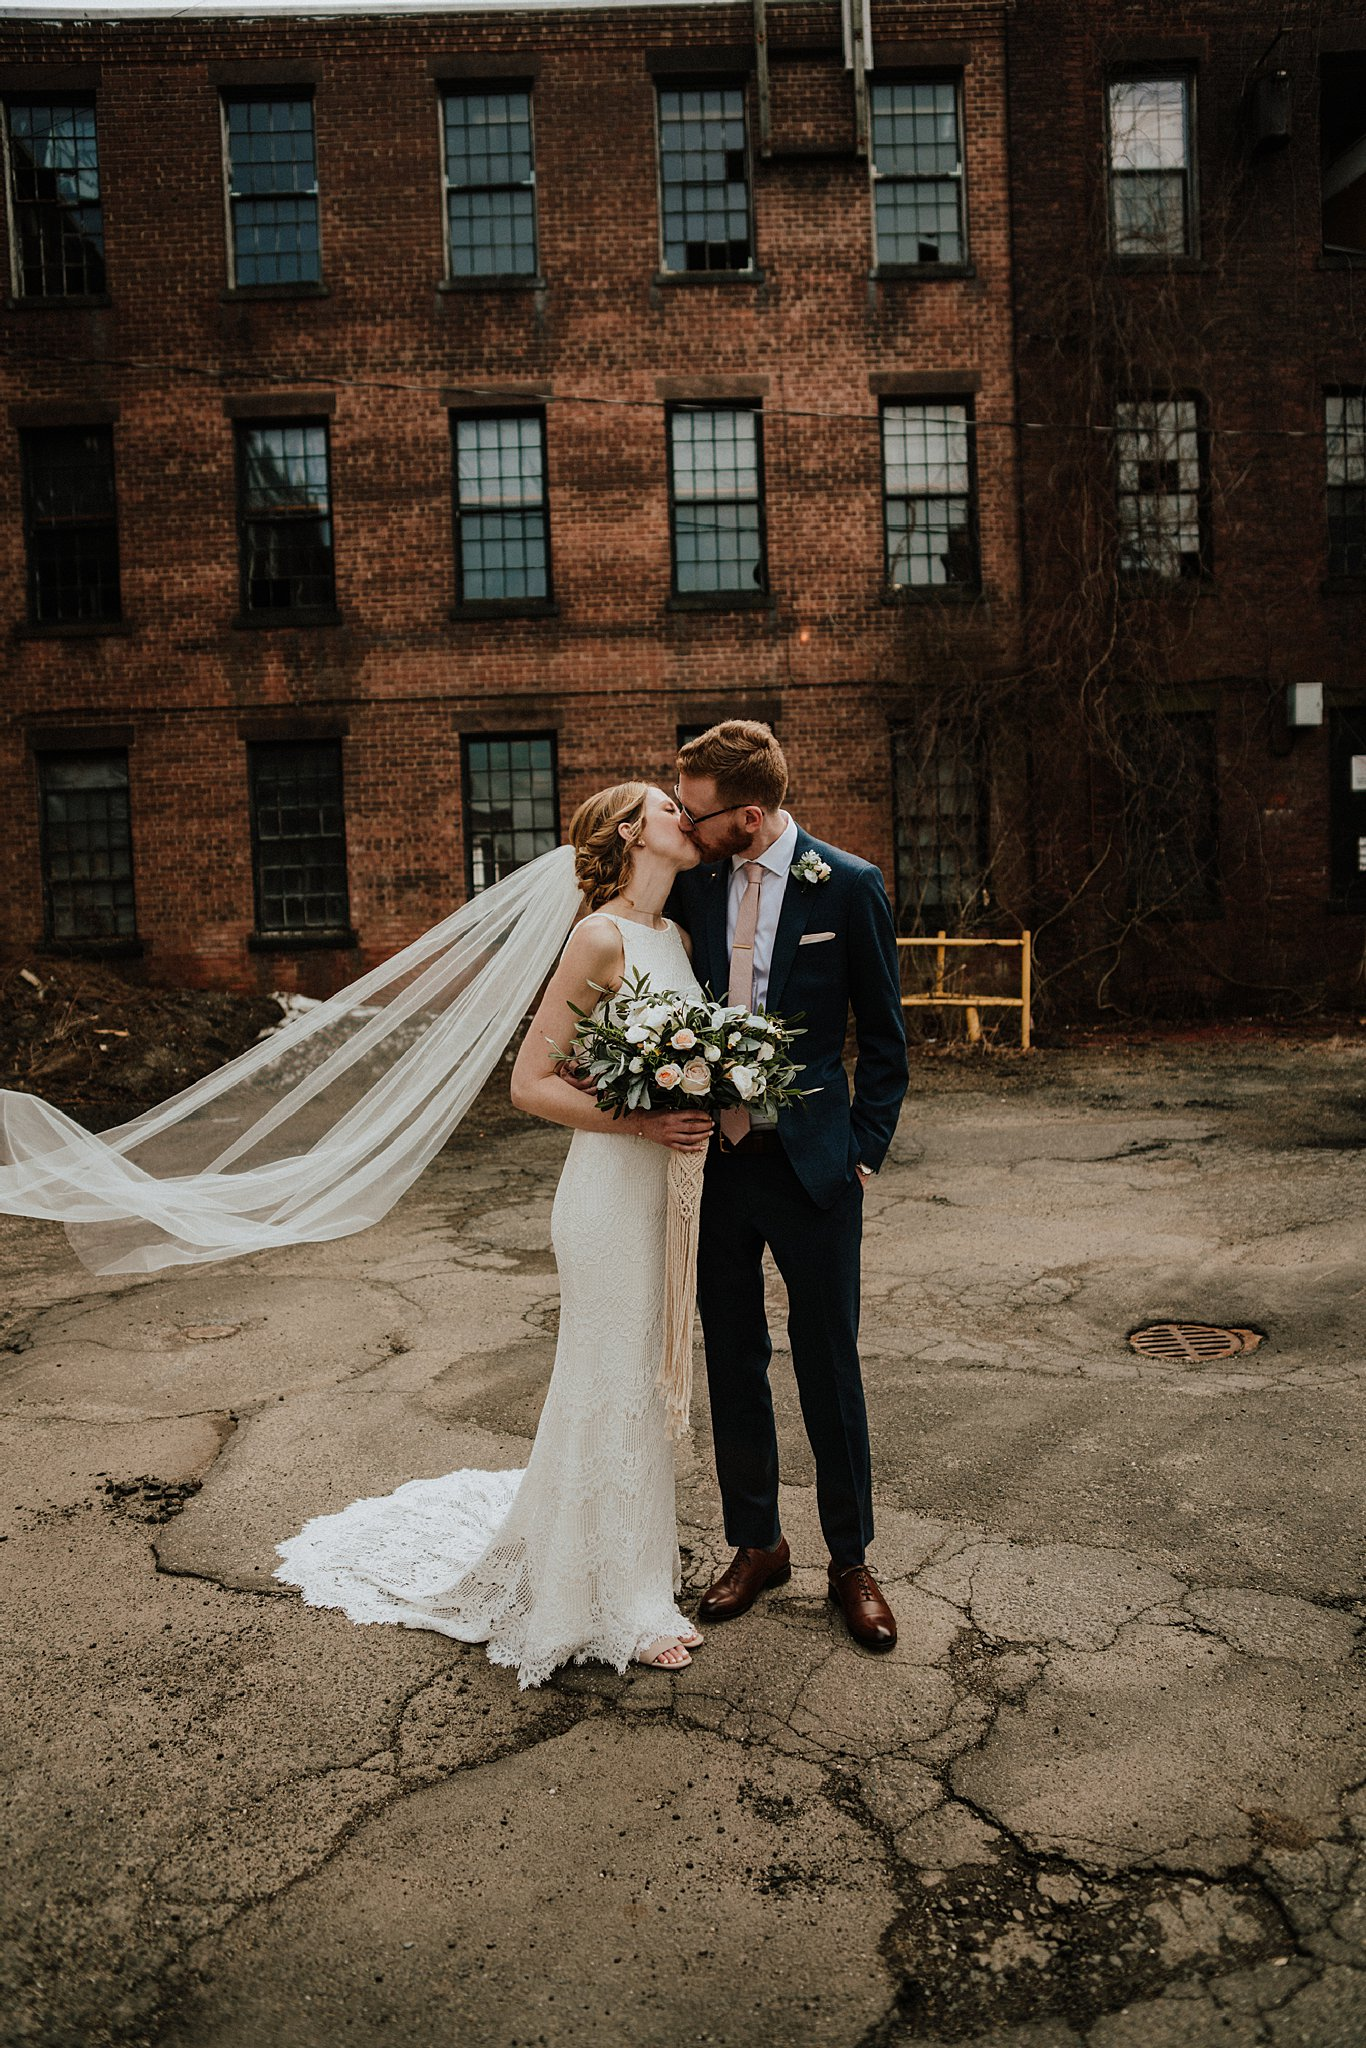 Bride and Groom | Wedding Day | Massachusetts Wedding | Mill 1 Wedding | Shelby Chari Photography